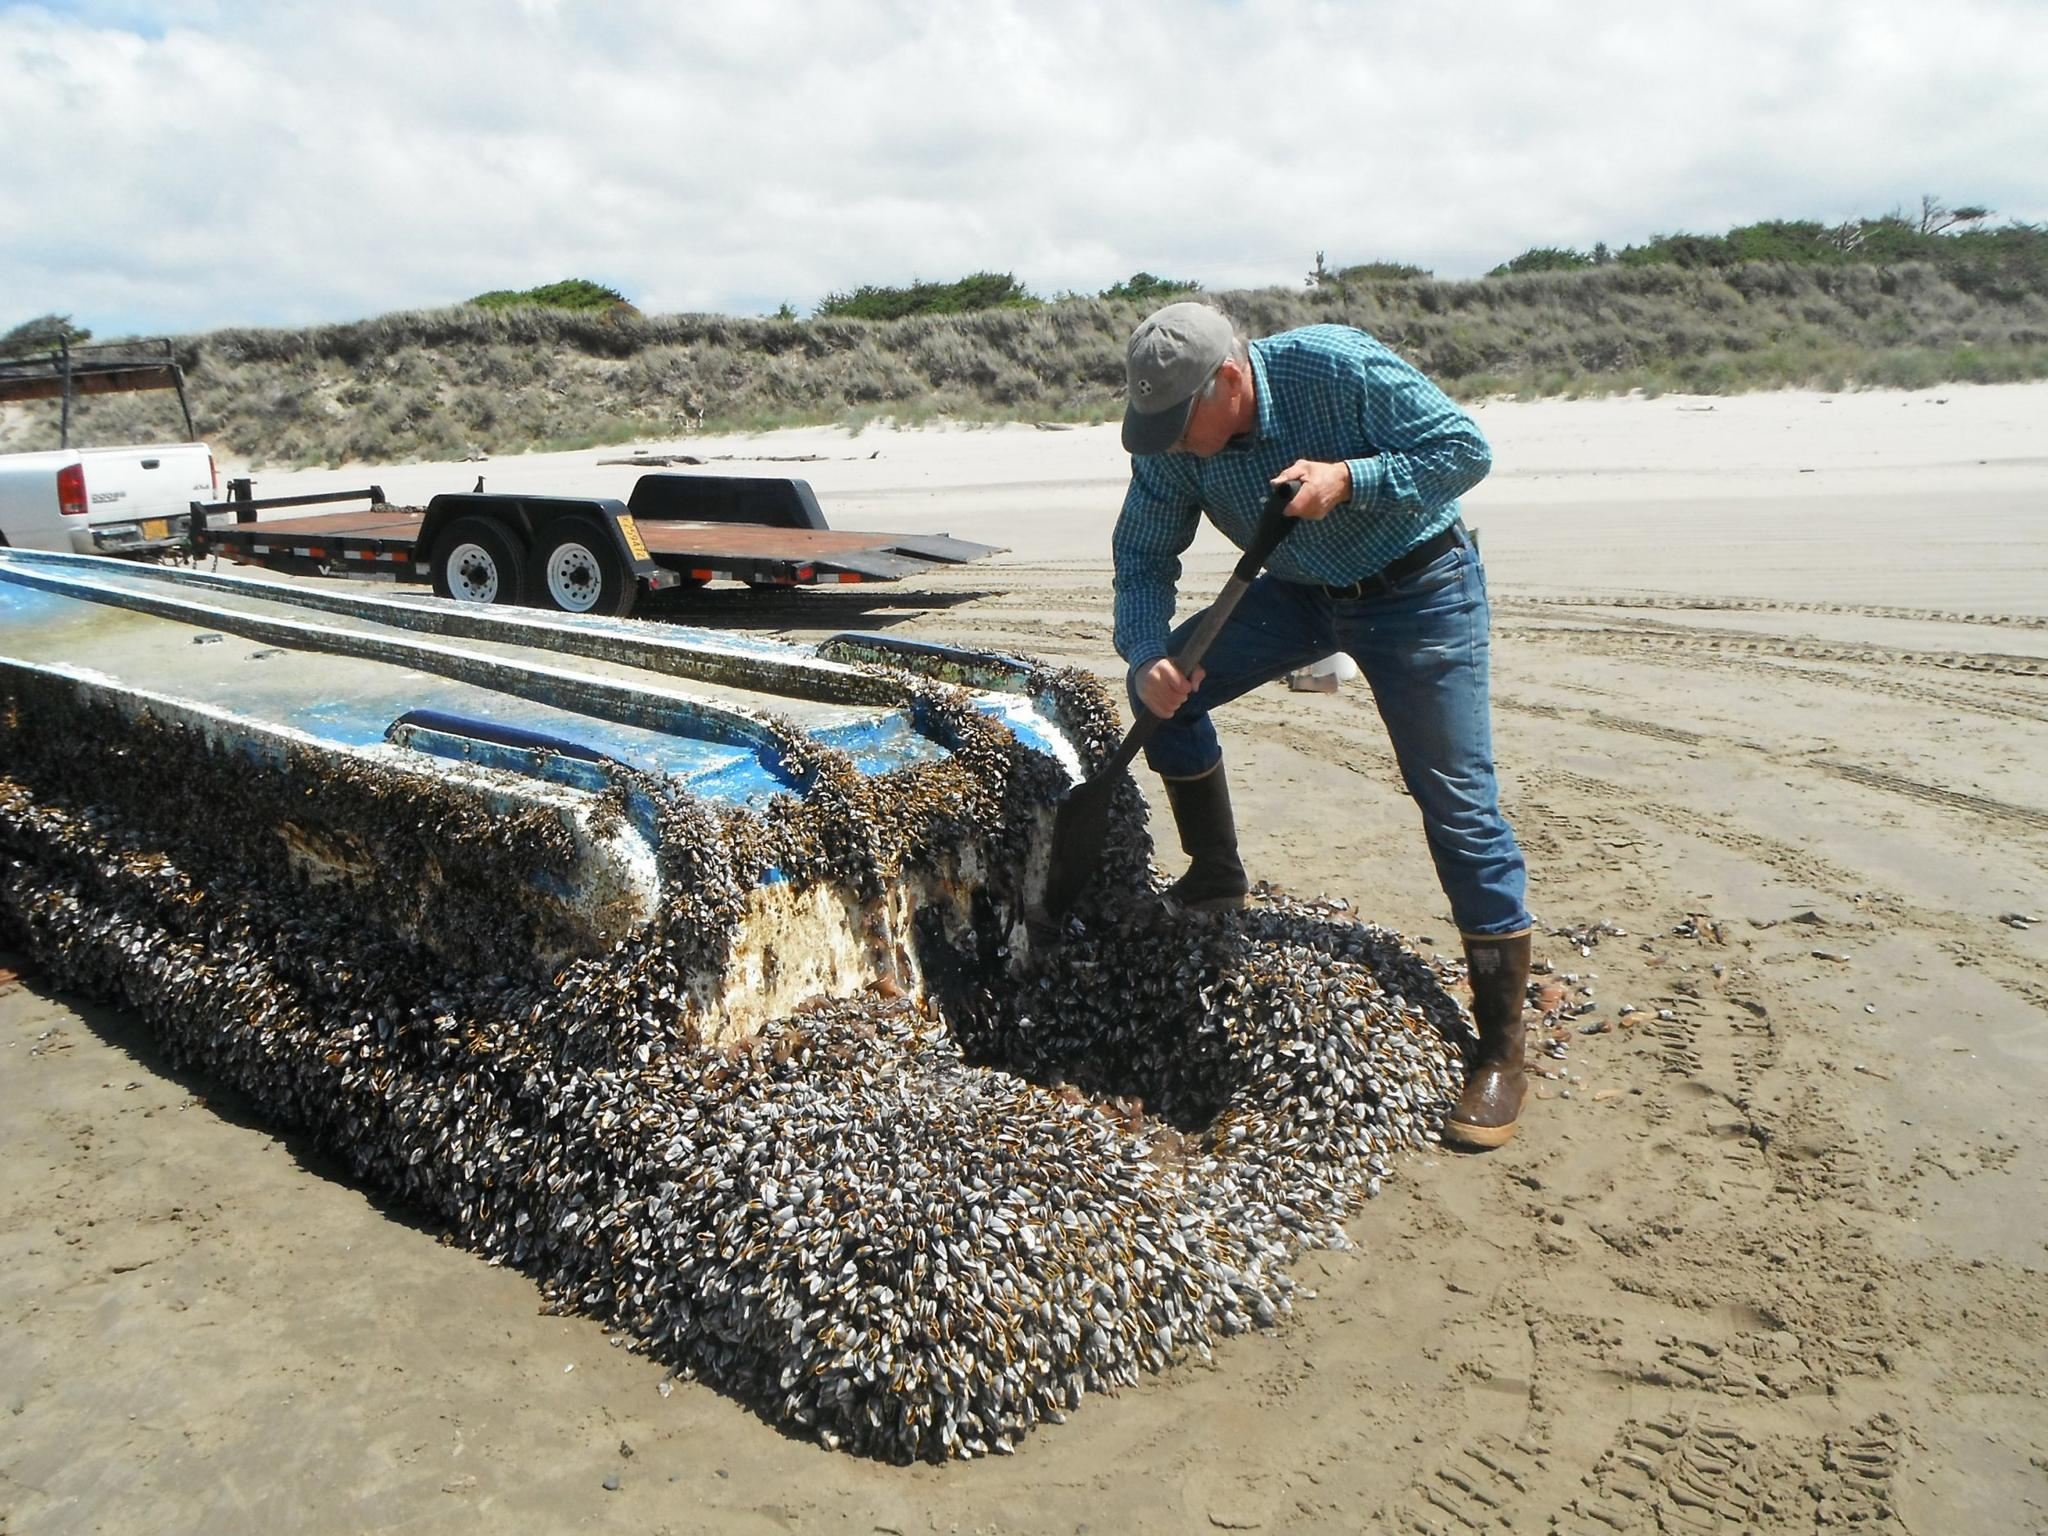 A Japanese vessel coated with sea creatures made its way to Washington after the tsunami.